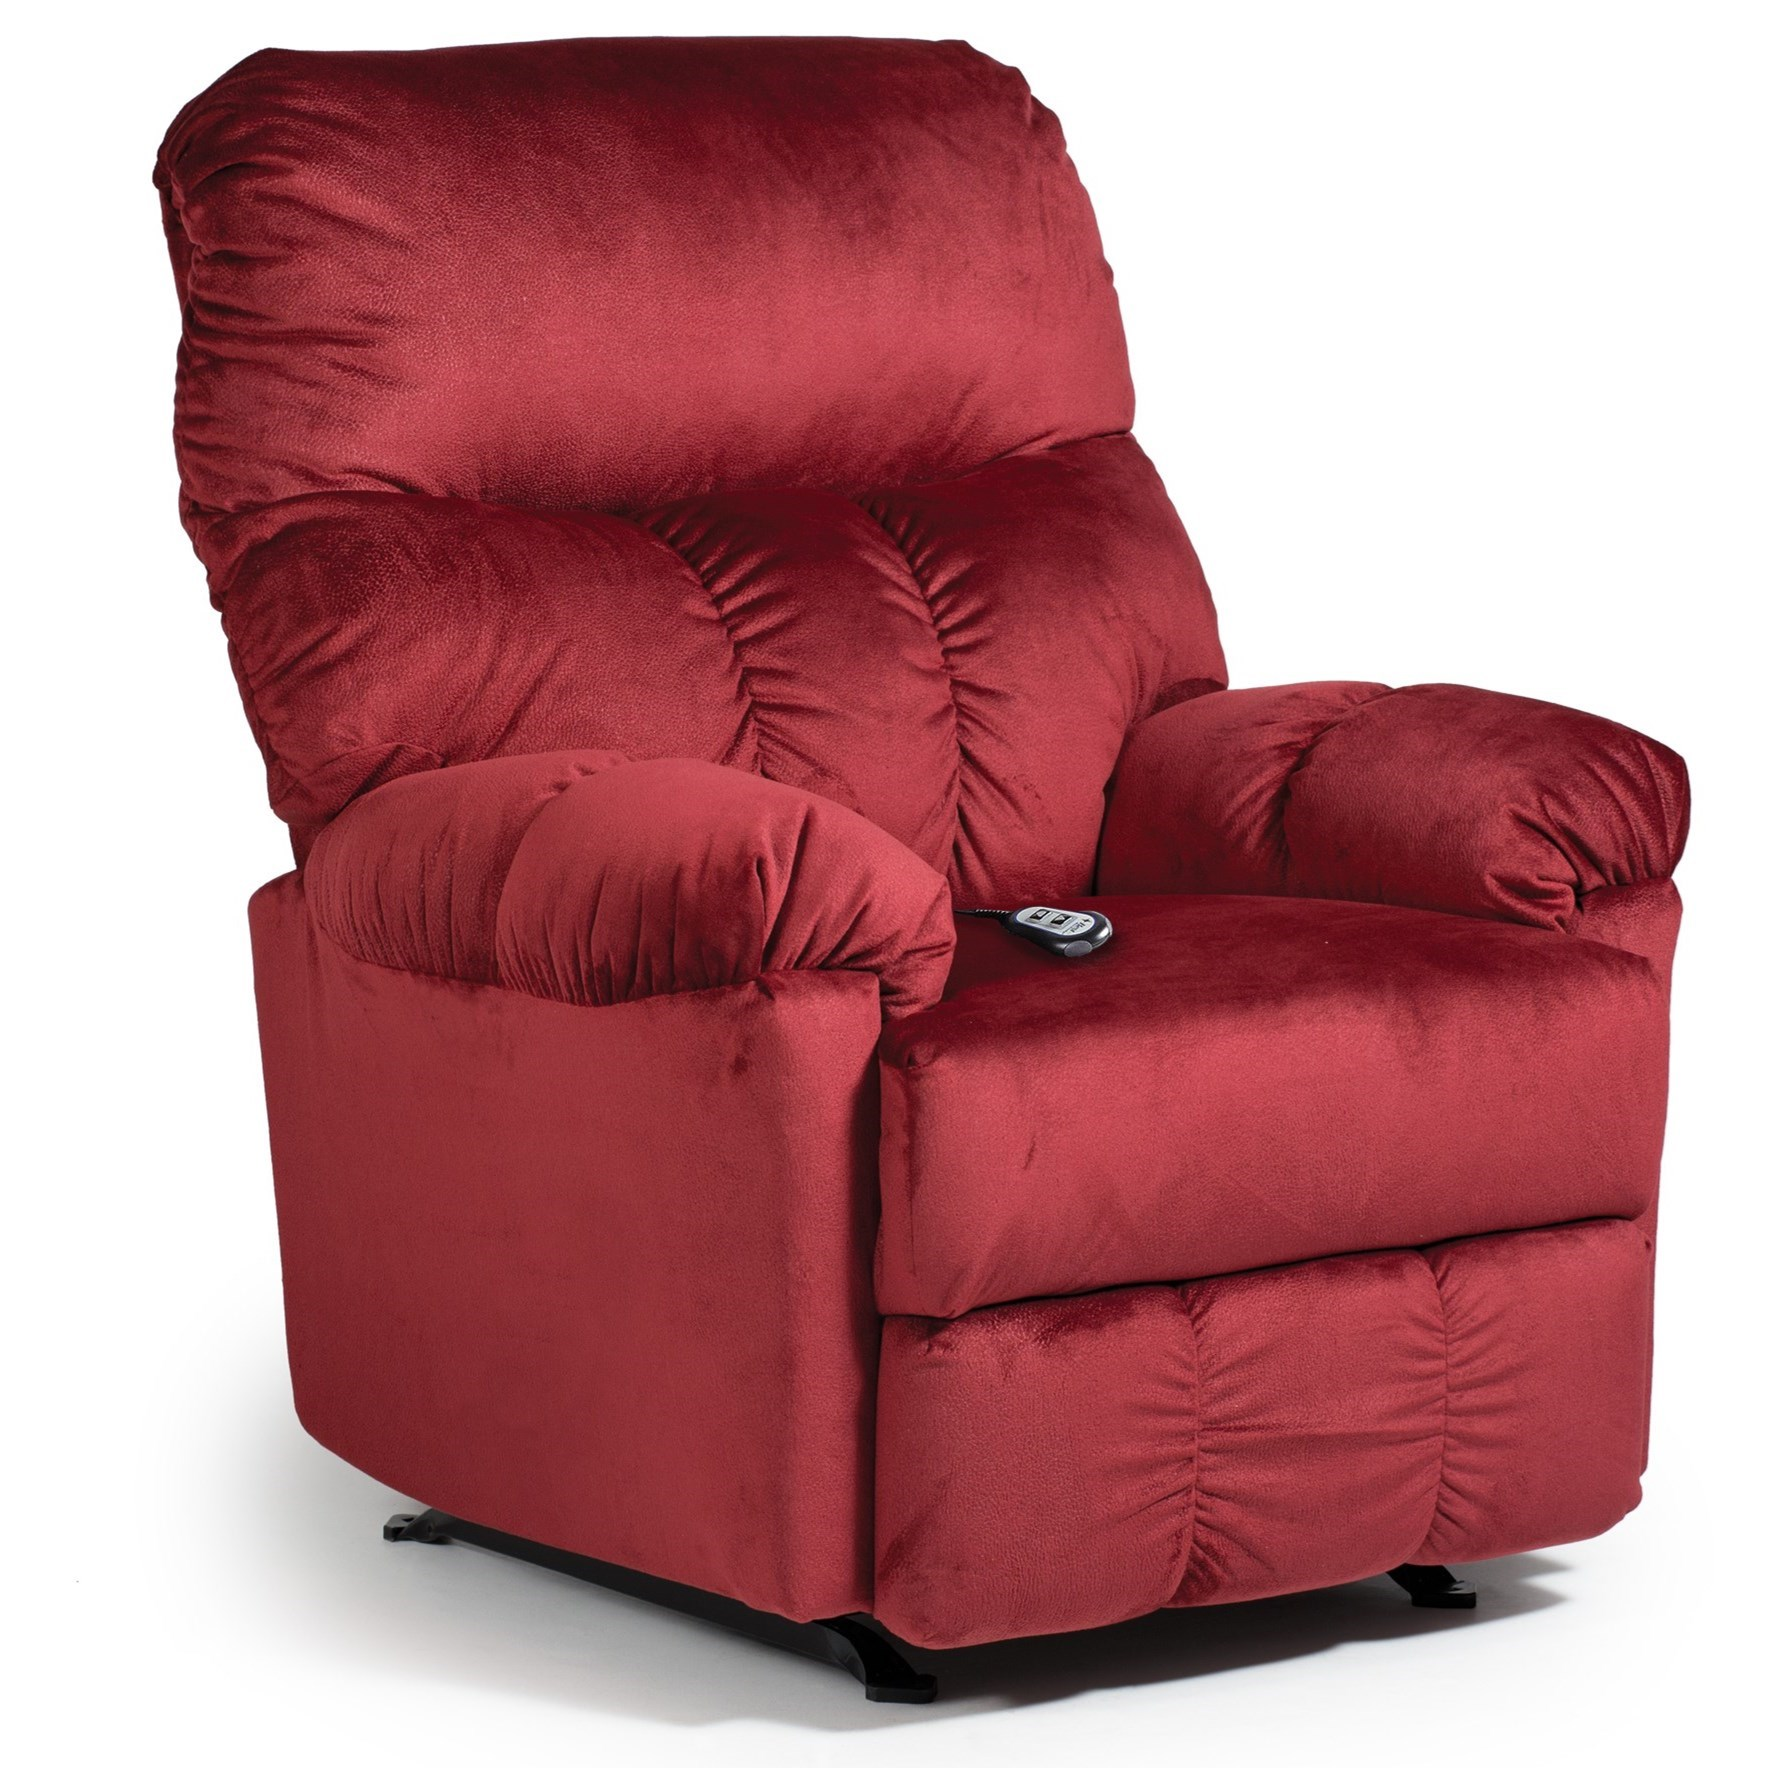 Best Home Furnishings Ares Ares Power Wall Hugger Recliner - Item Number: 2MP34-1-21238